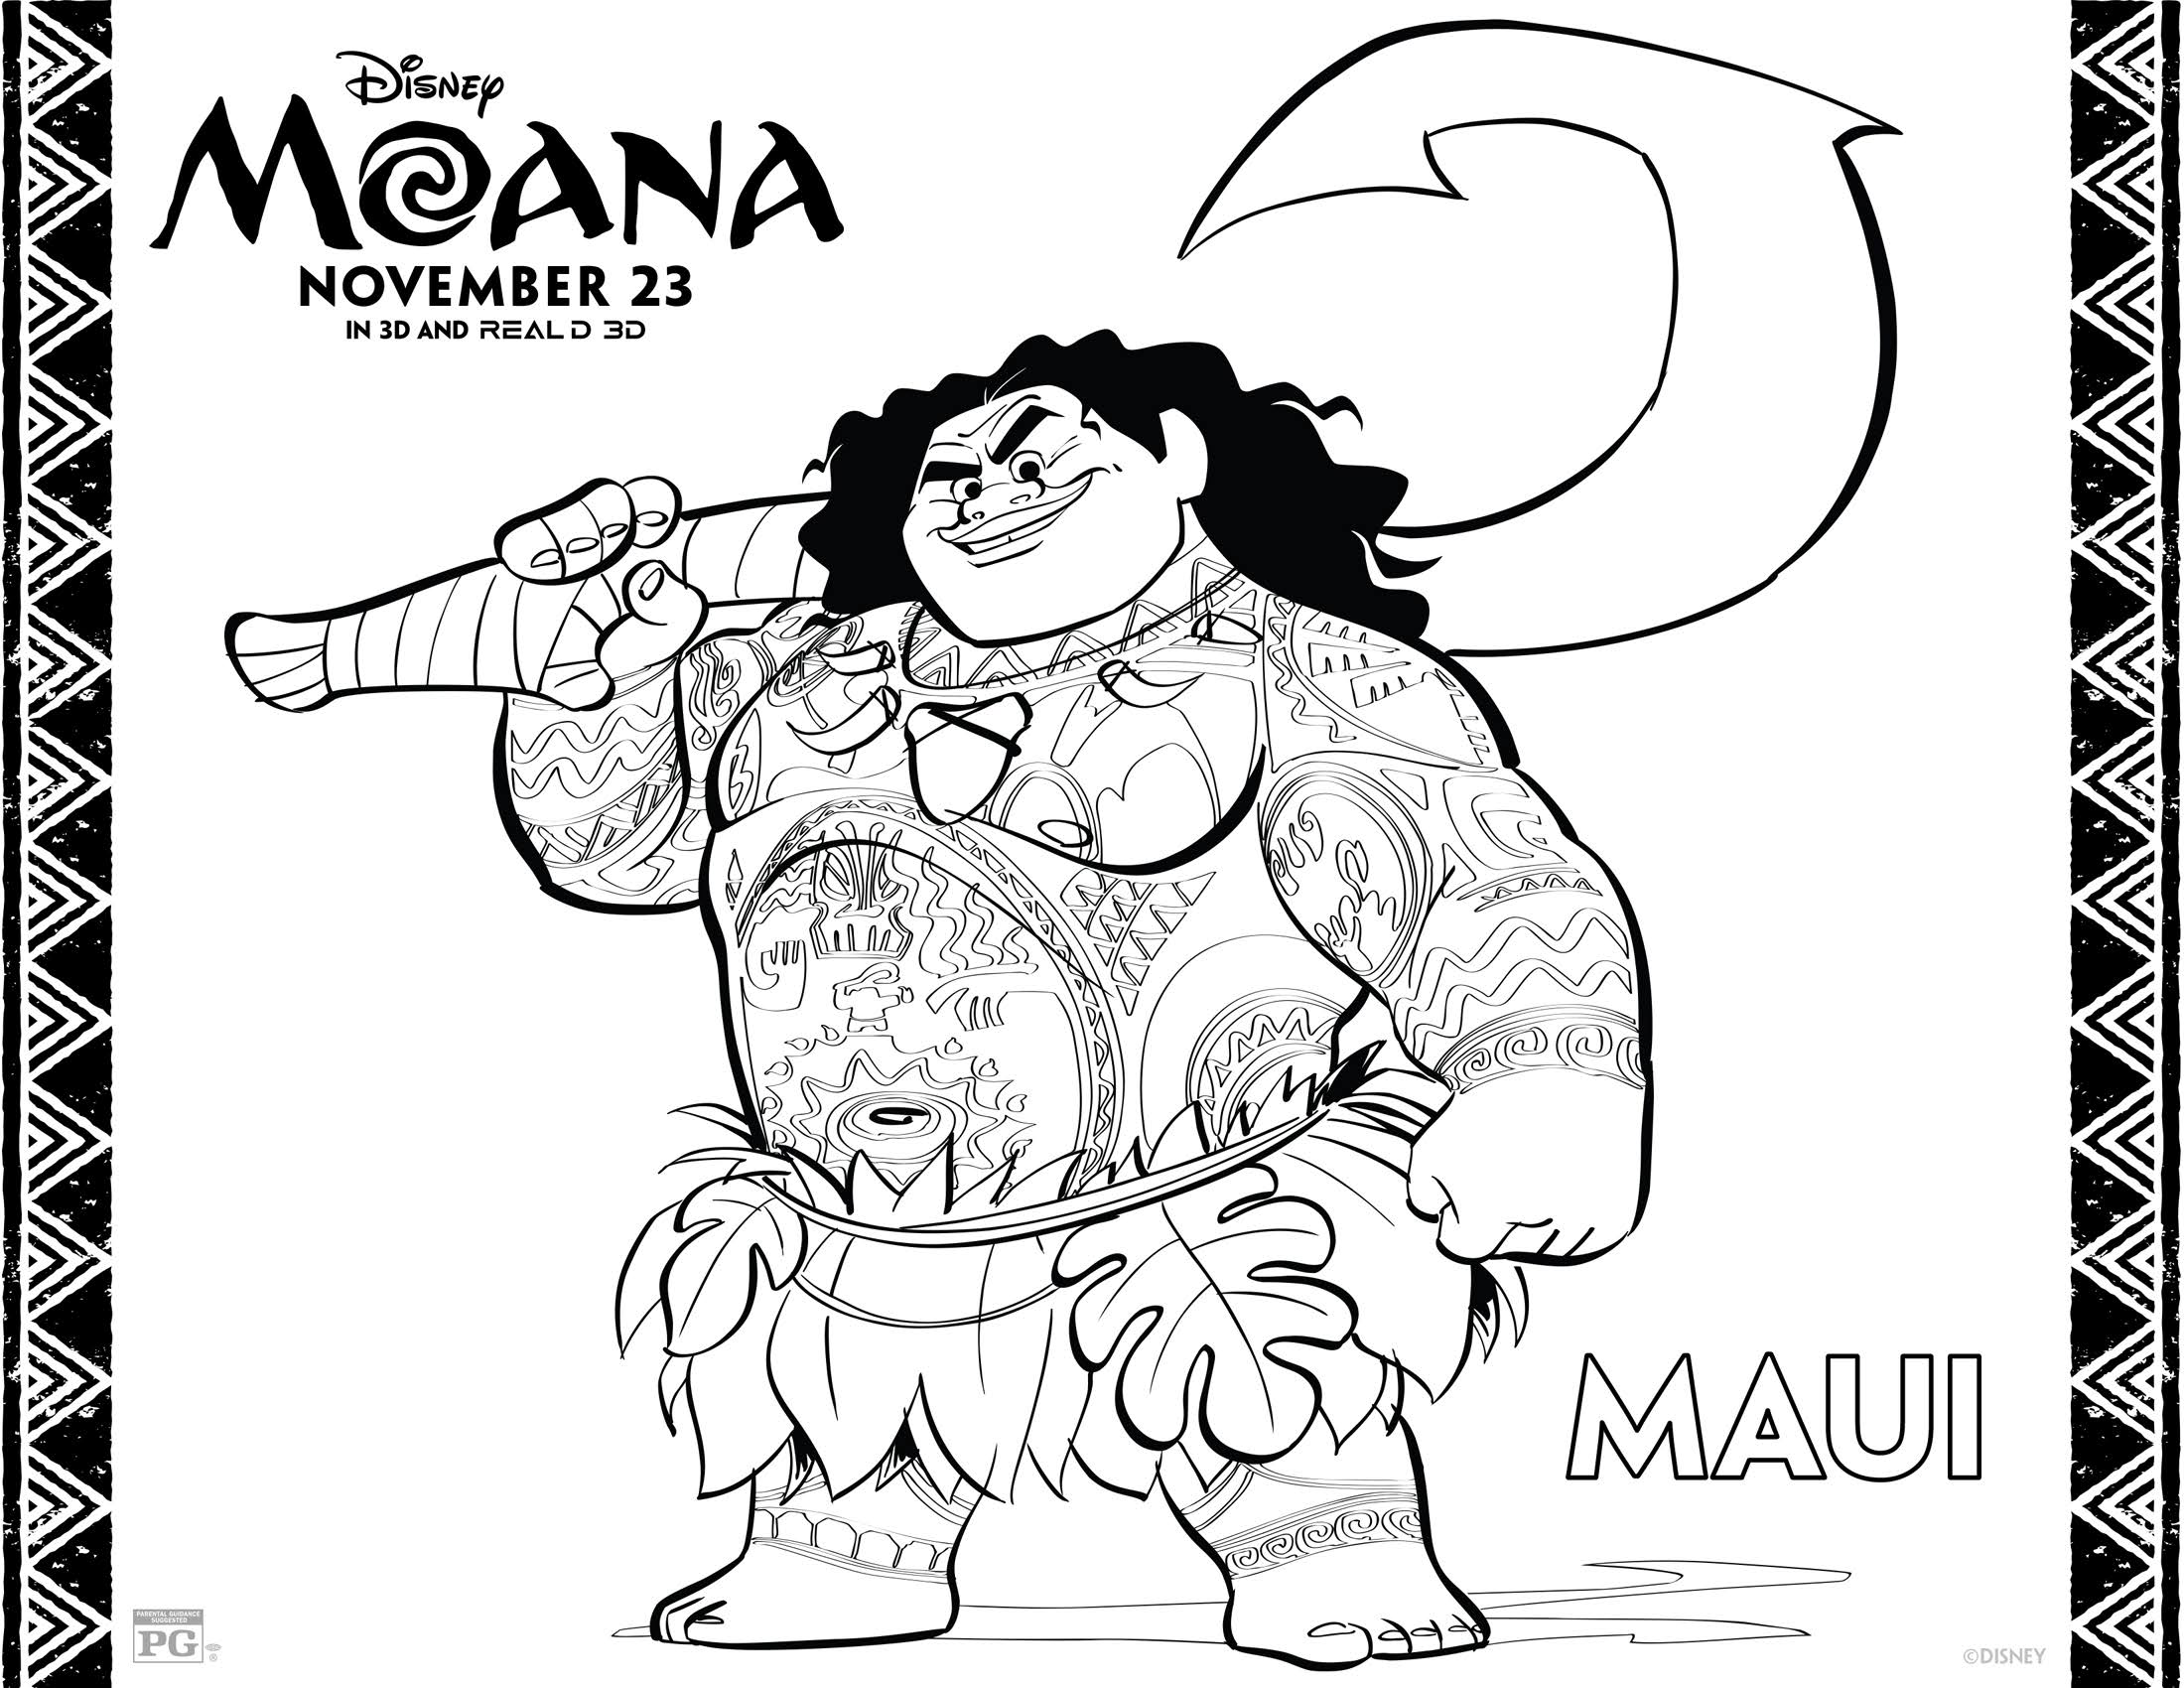 disney moana coloring pages moana coloring pages free printables from disney coloring disney moana pages